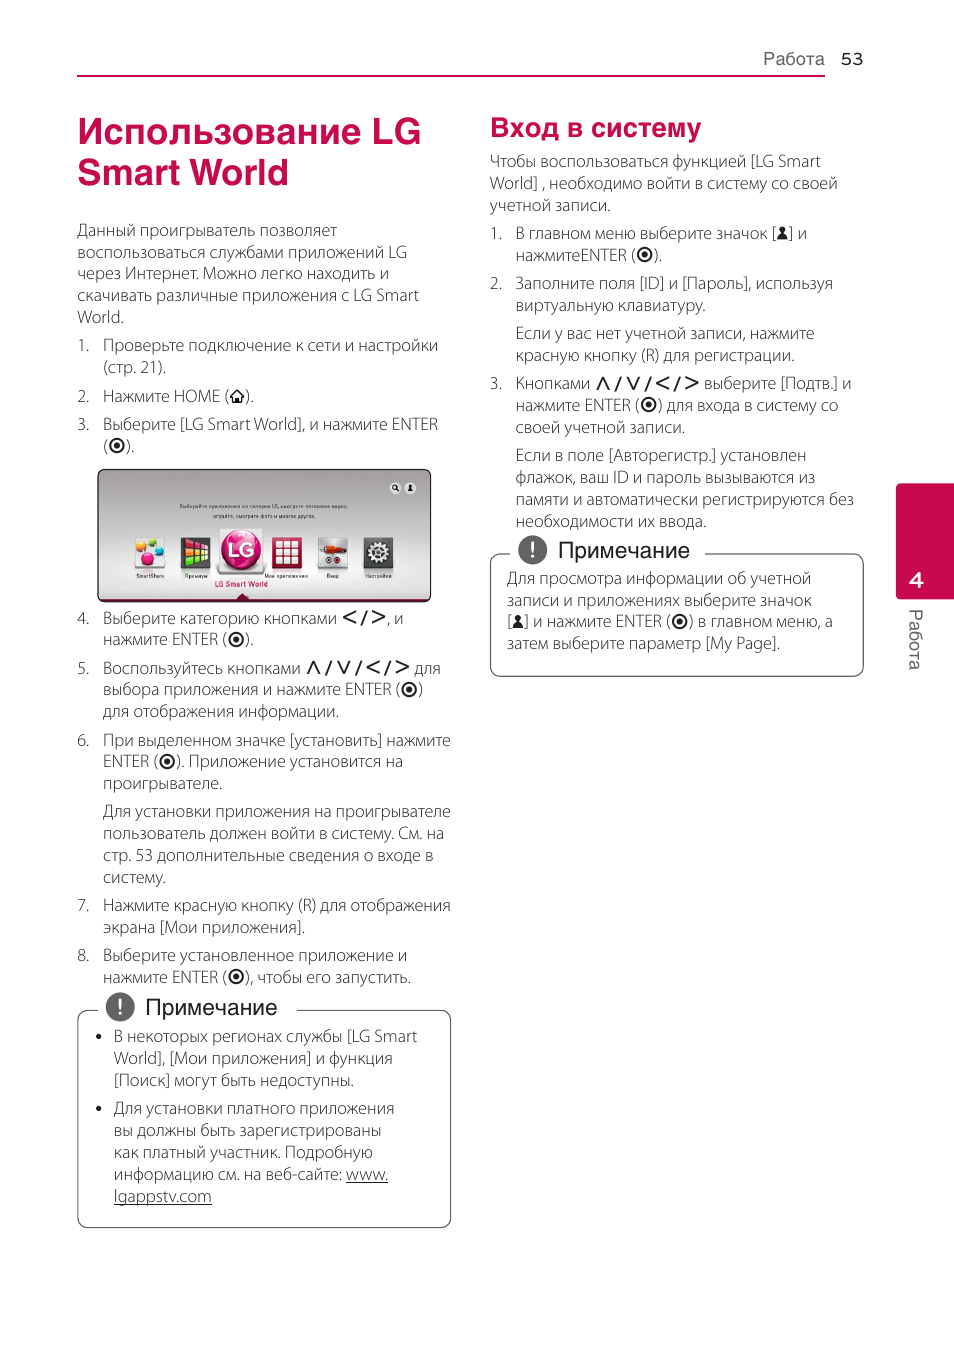 Использование lg smart world 7bfb91caa8a5b